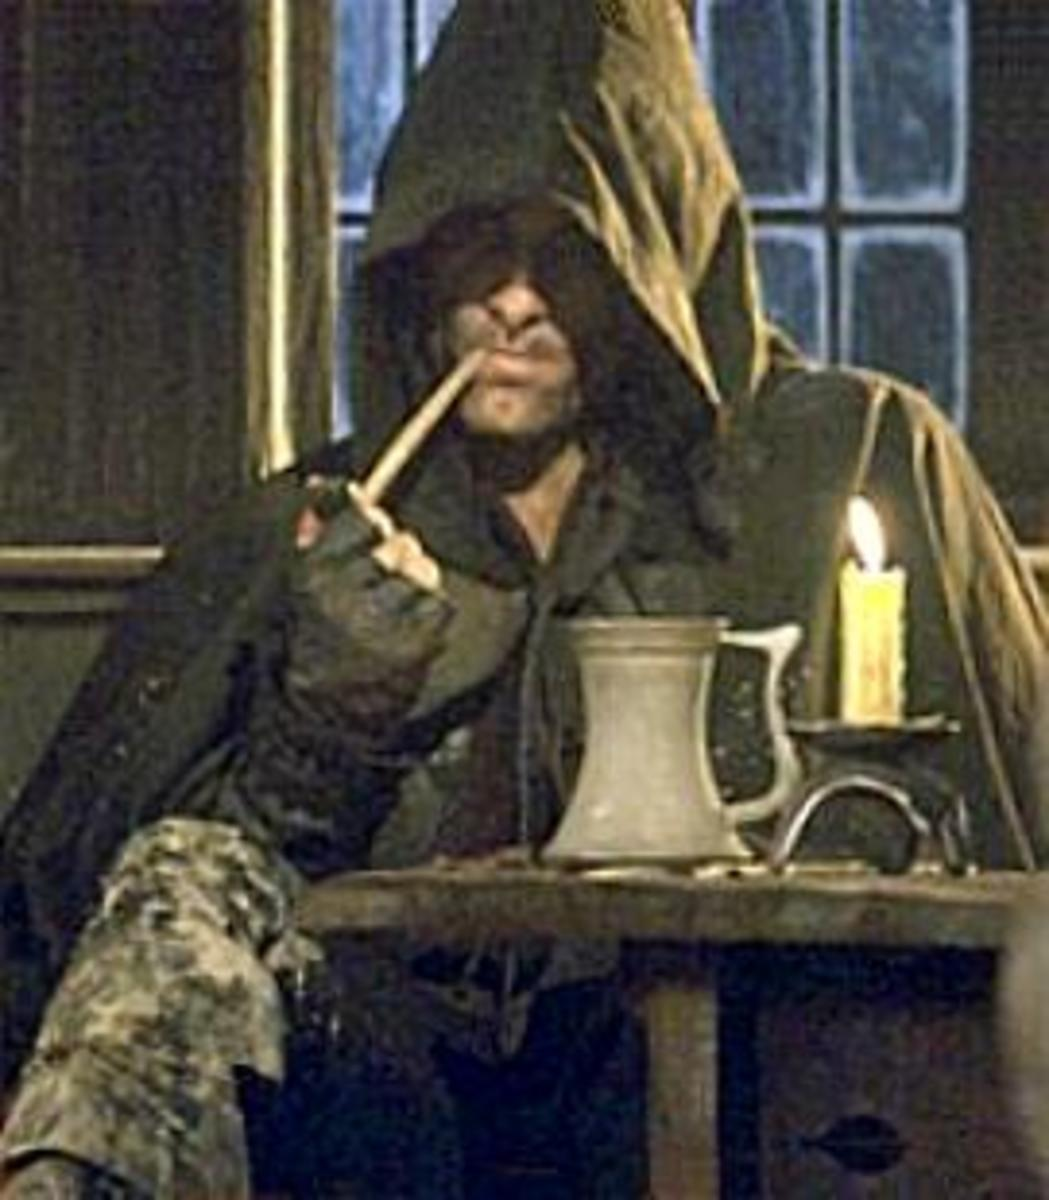 Aragorn the Ranger smokes a pipe at Inn of the Prancing Pony in Bree.